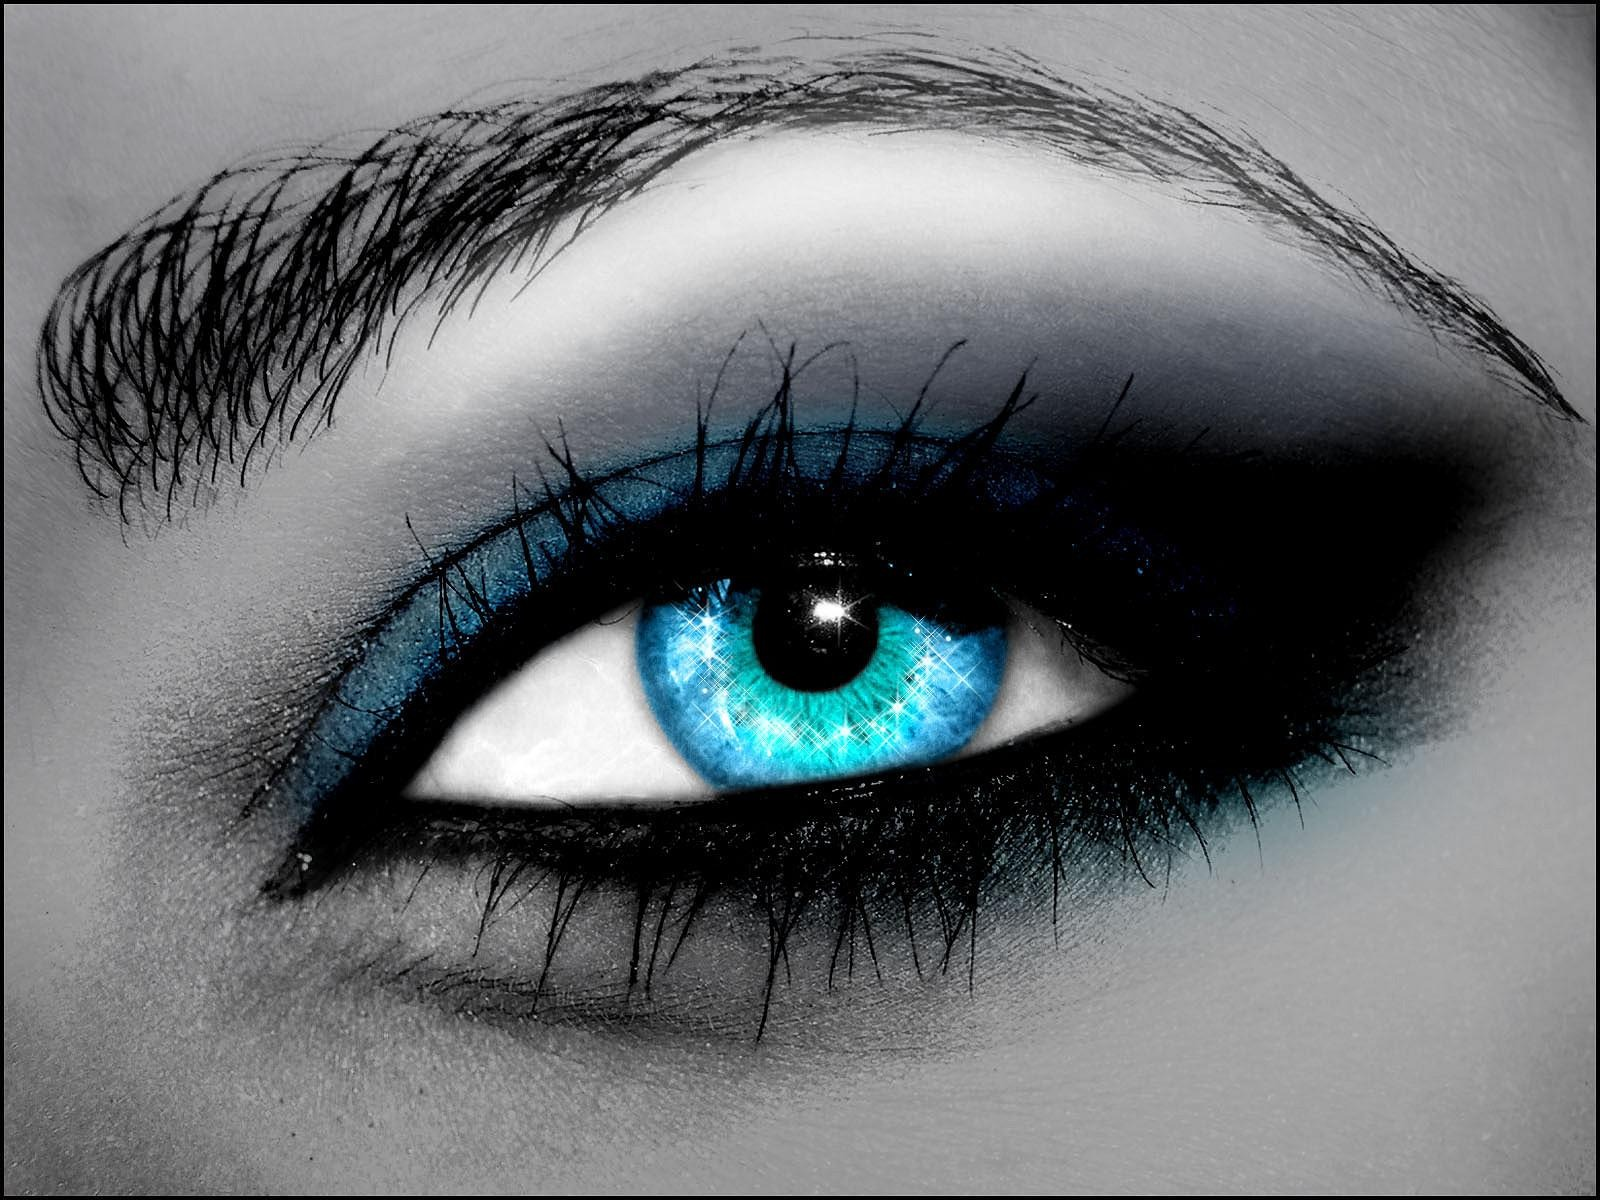 Eyes Wallpapers HD, Desktop Backgrounds, Images and Pictures 1600x1200